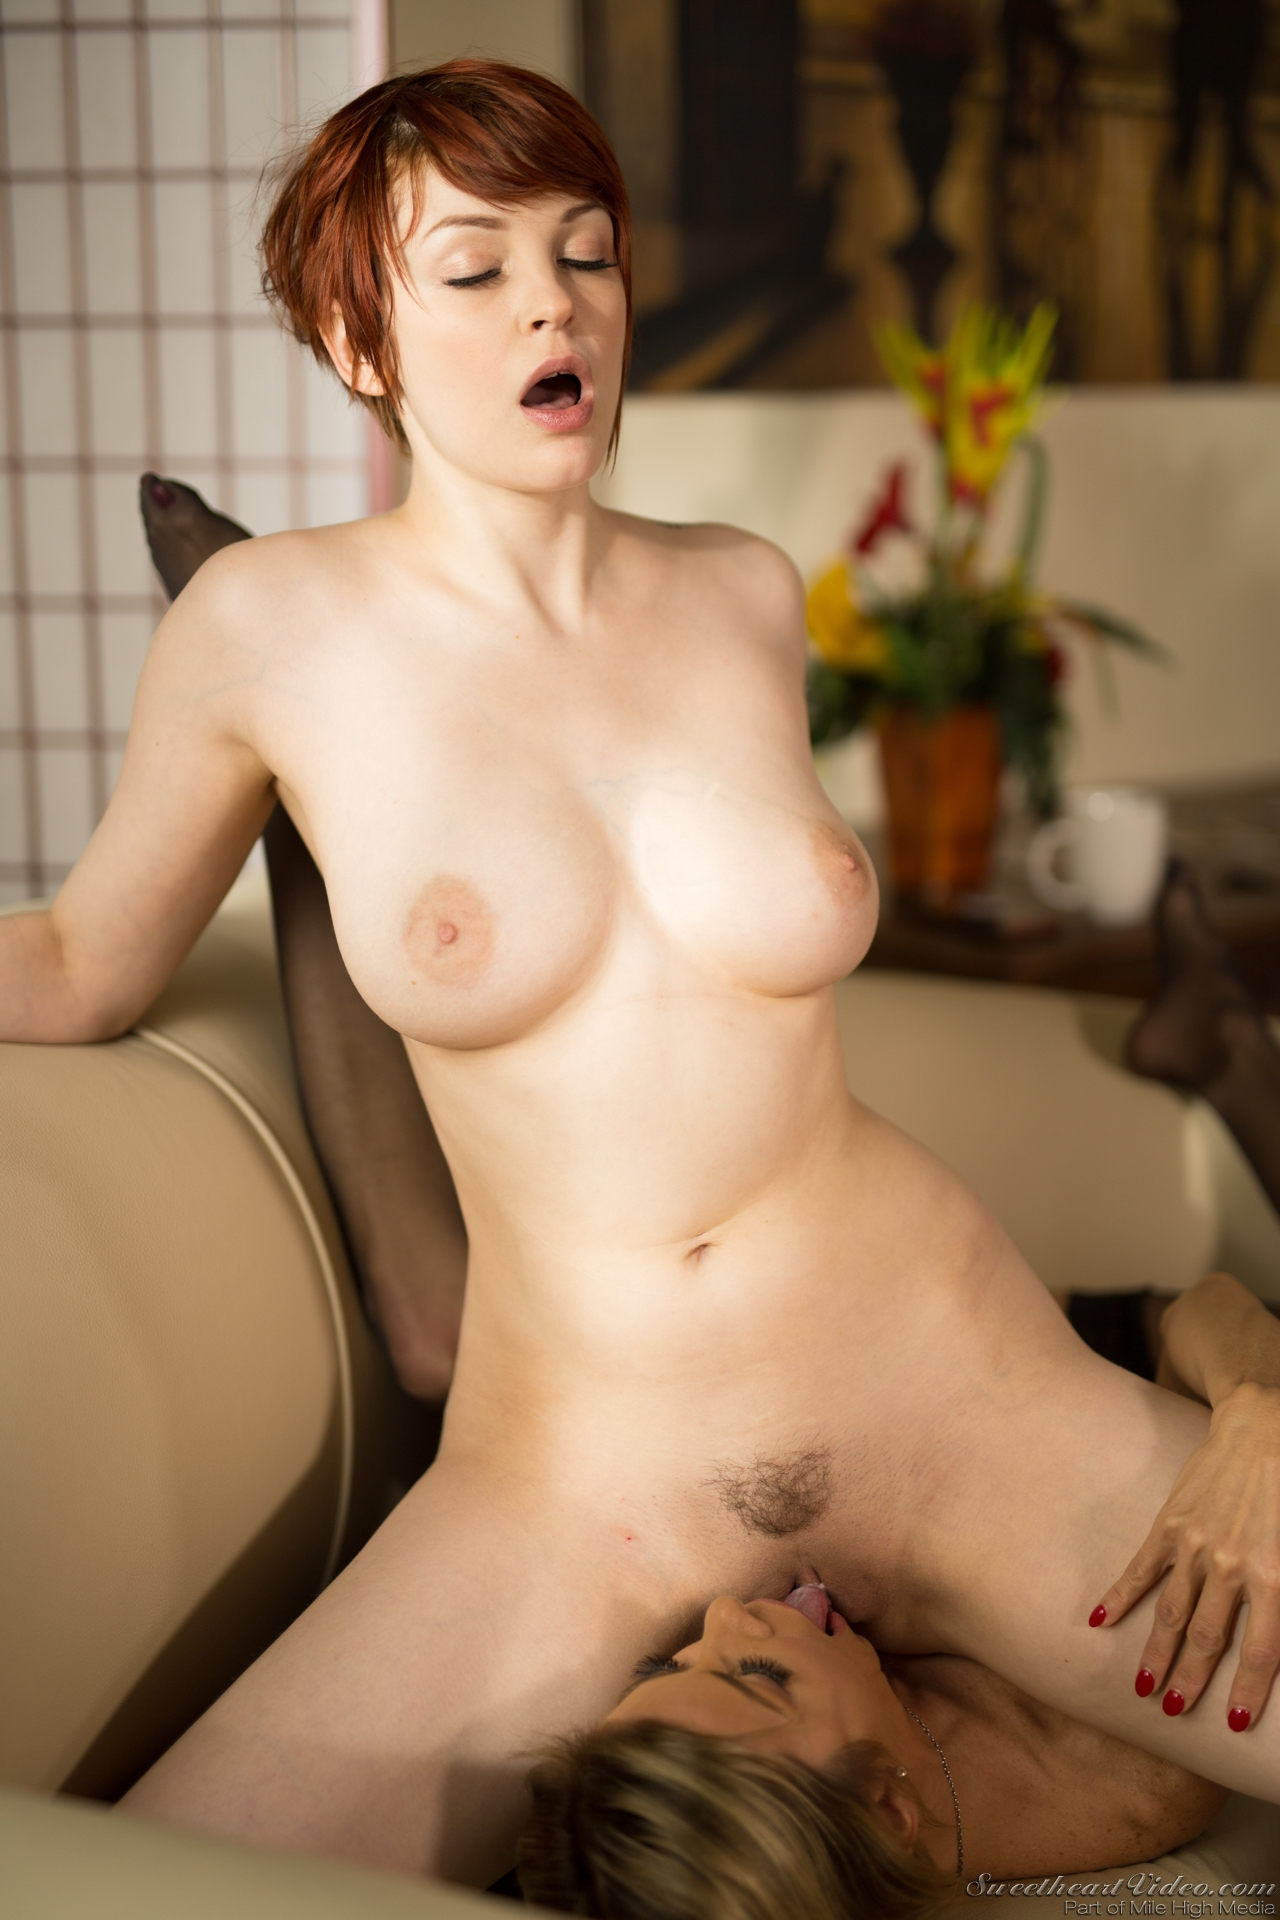 pussy germany sexs picture